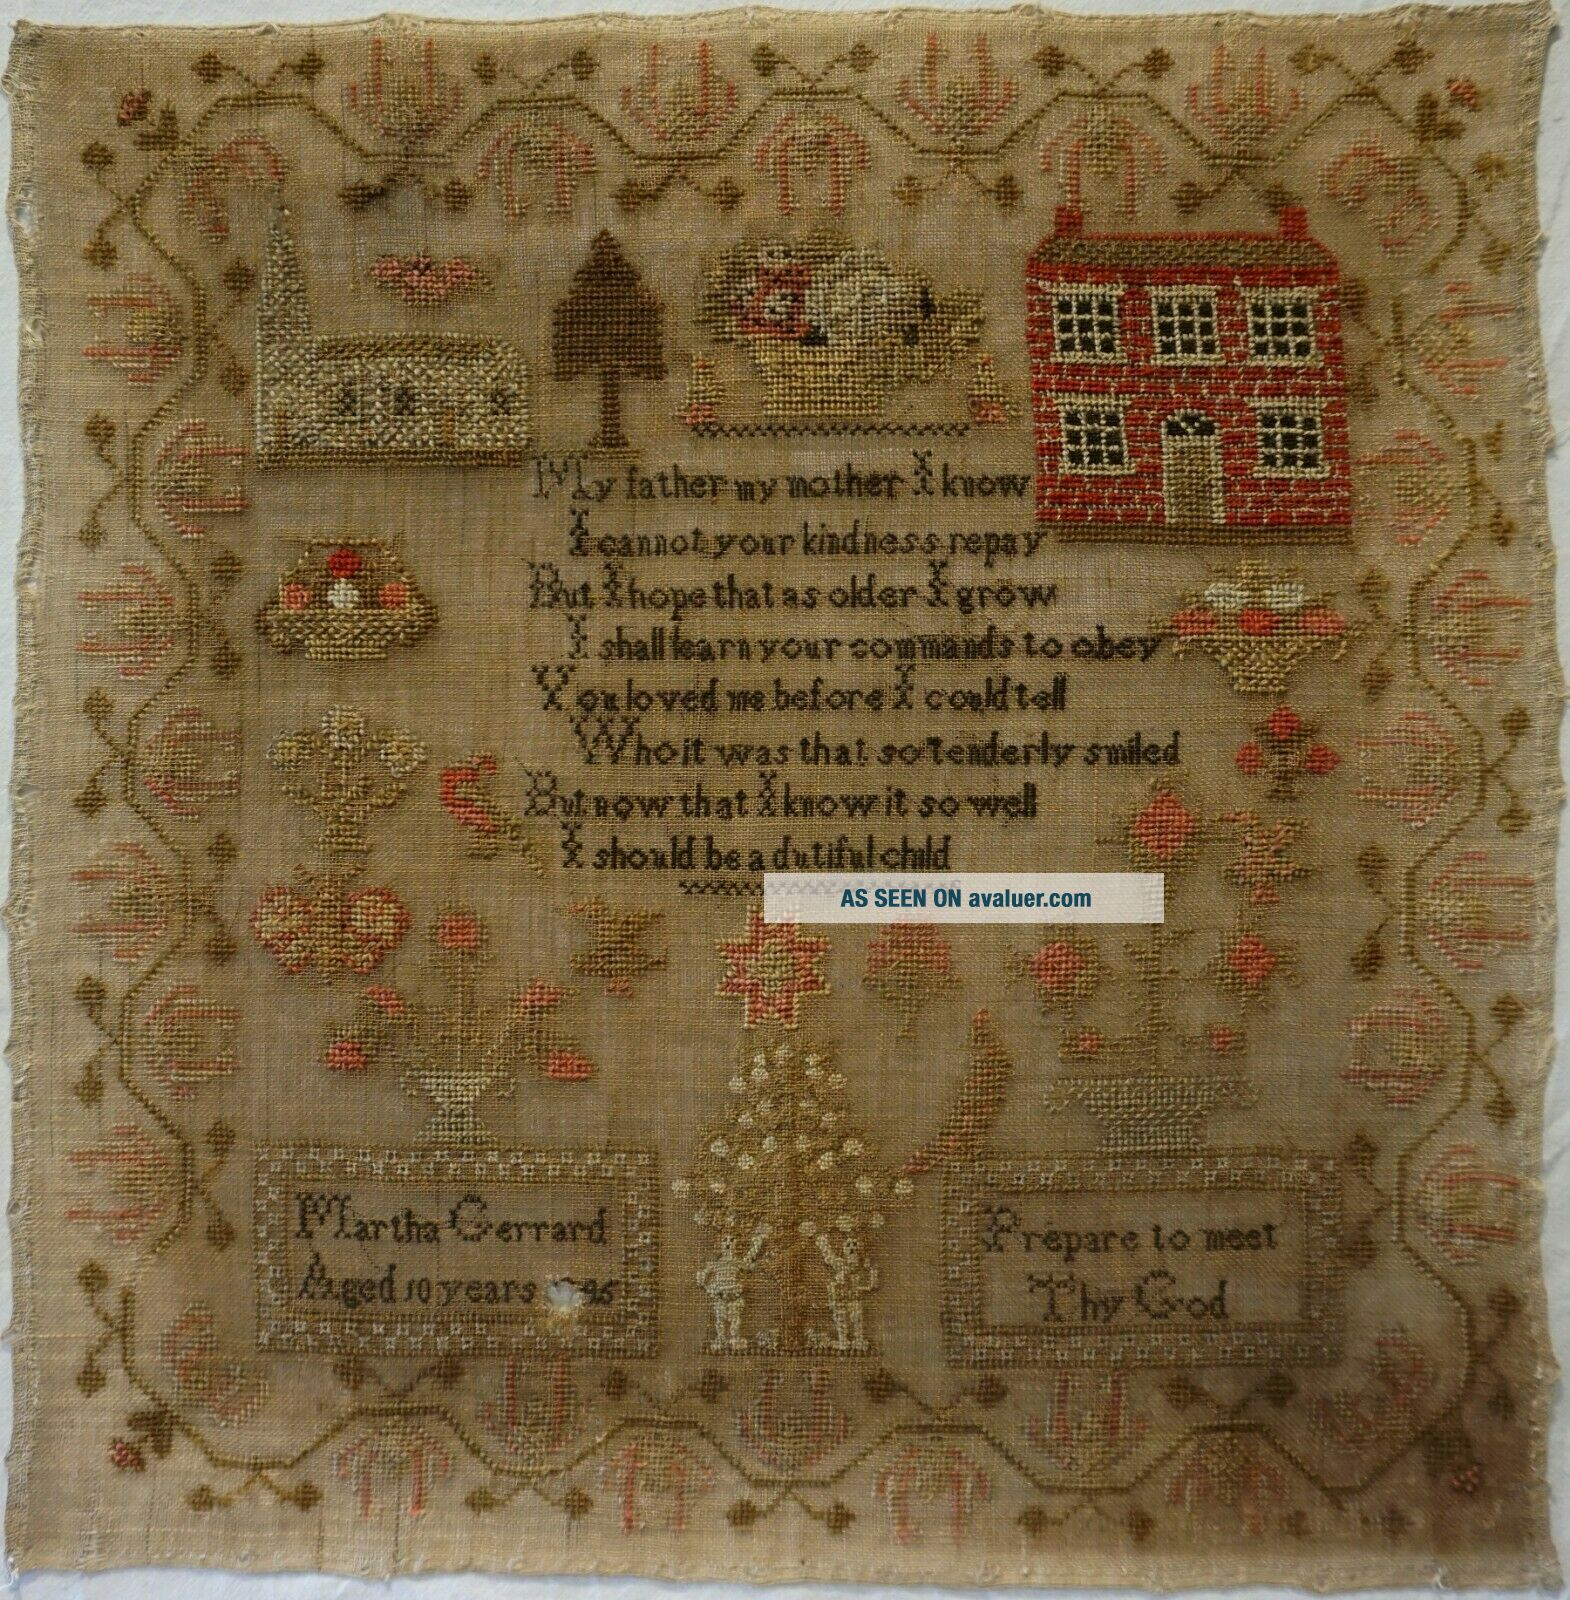 MID 19TH CENTURY RED HOUSE,  CHURCH & VERSE SAMPLER BY MARTHA GERRARD AGE 10 1845